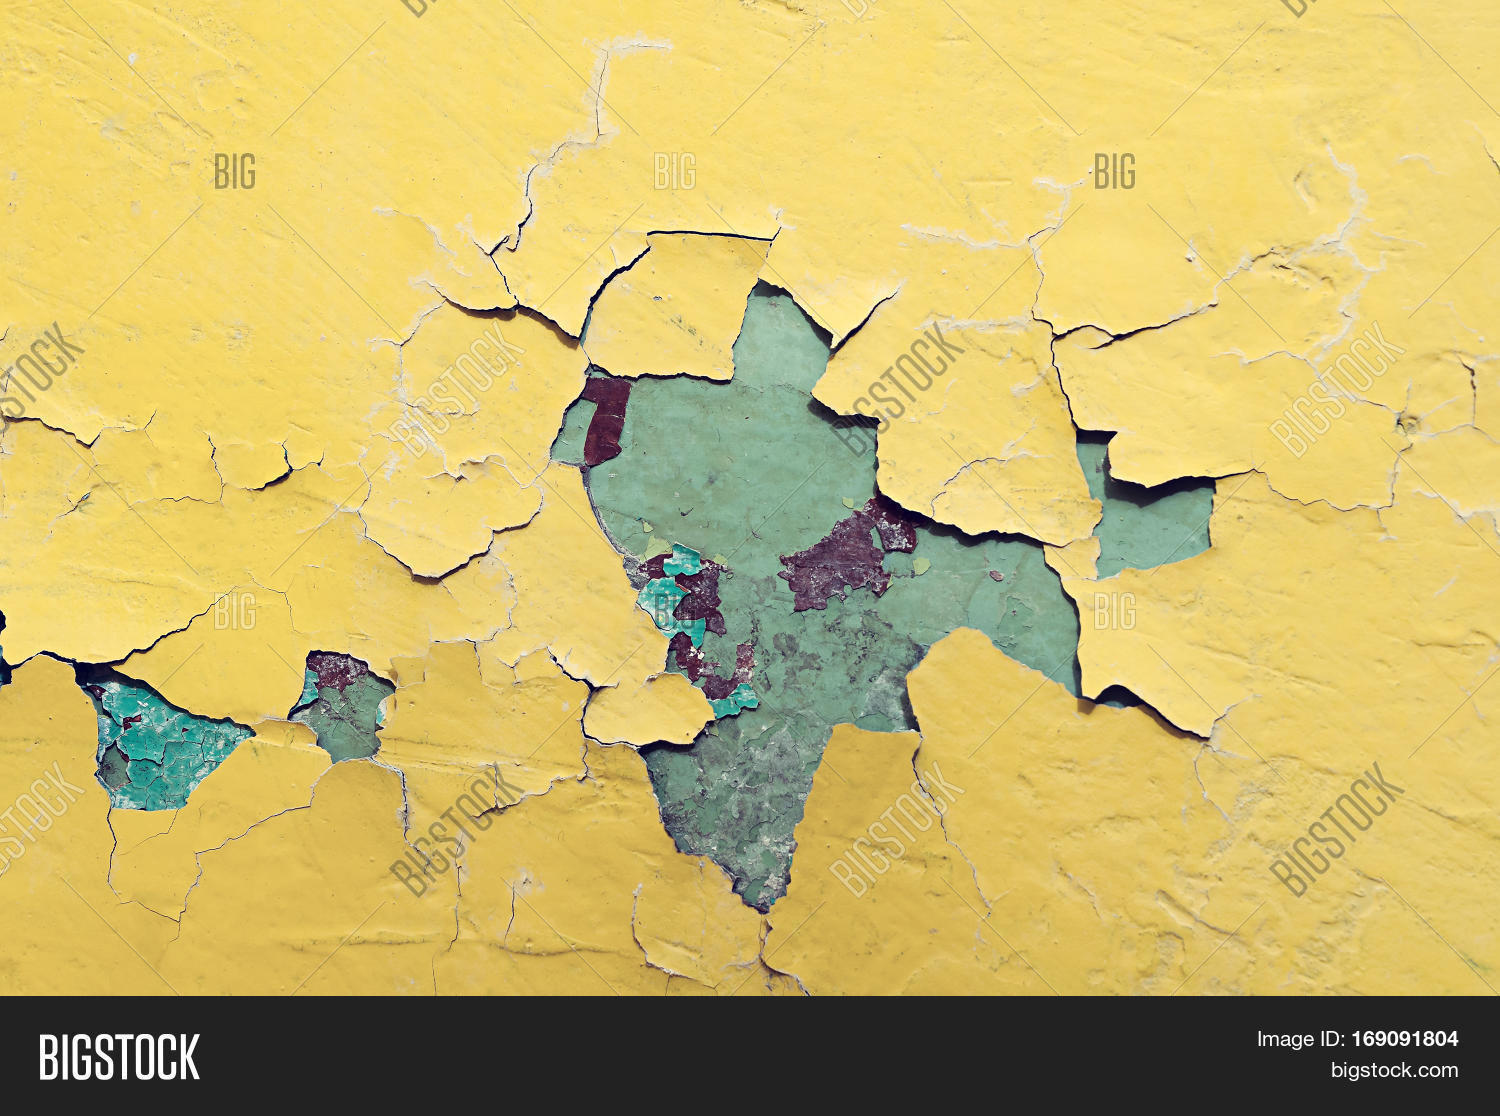 Texture background image photo free trial bigstock texture background of light yellow and blue texture peeling paint on the old rough texture surface gumiabroncs Gallery